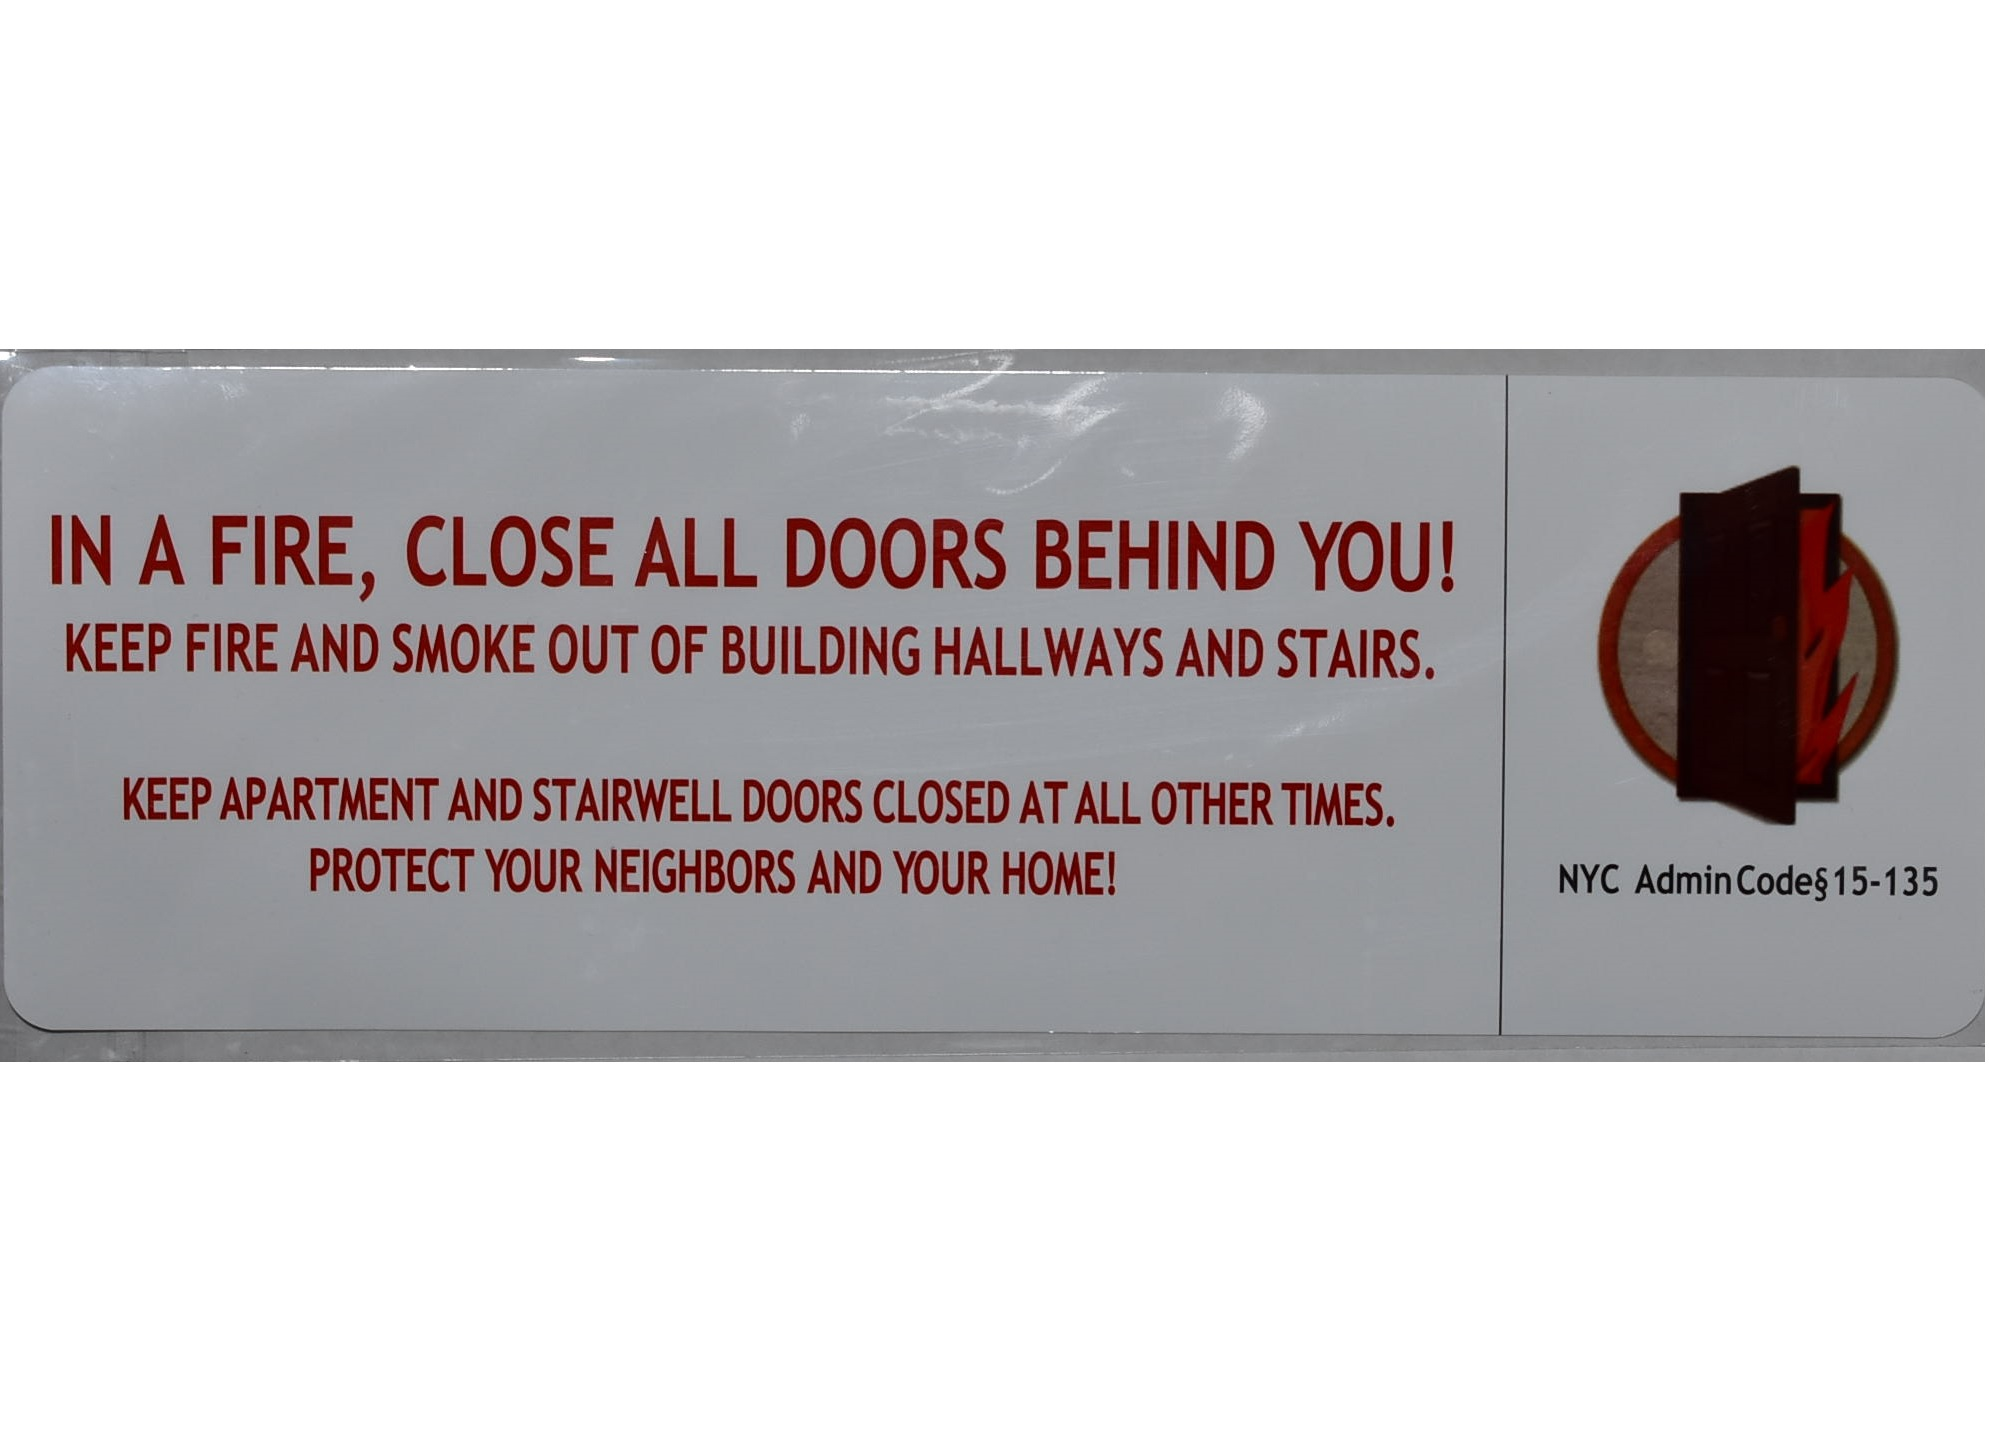 shut-the-door-sign-hpd-nyc.jpg